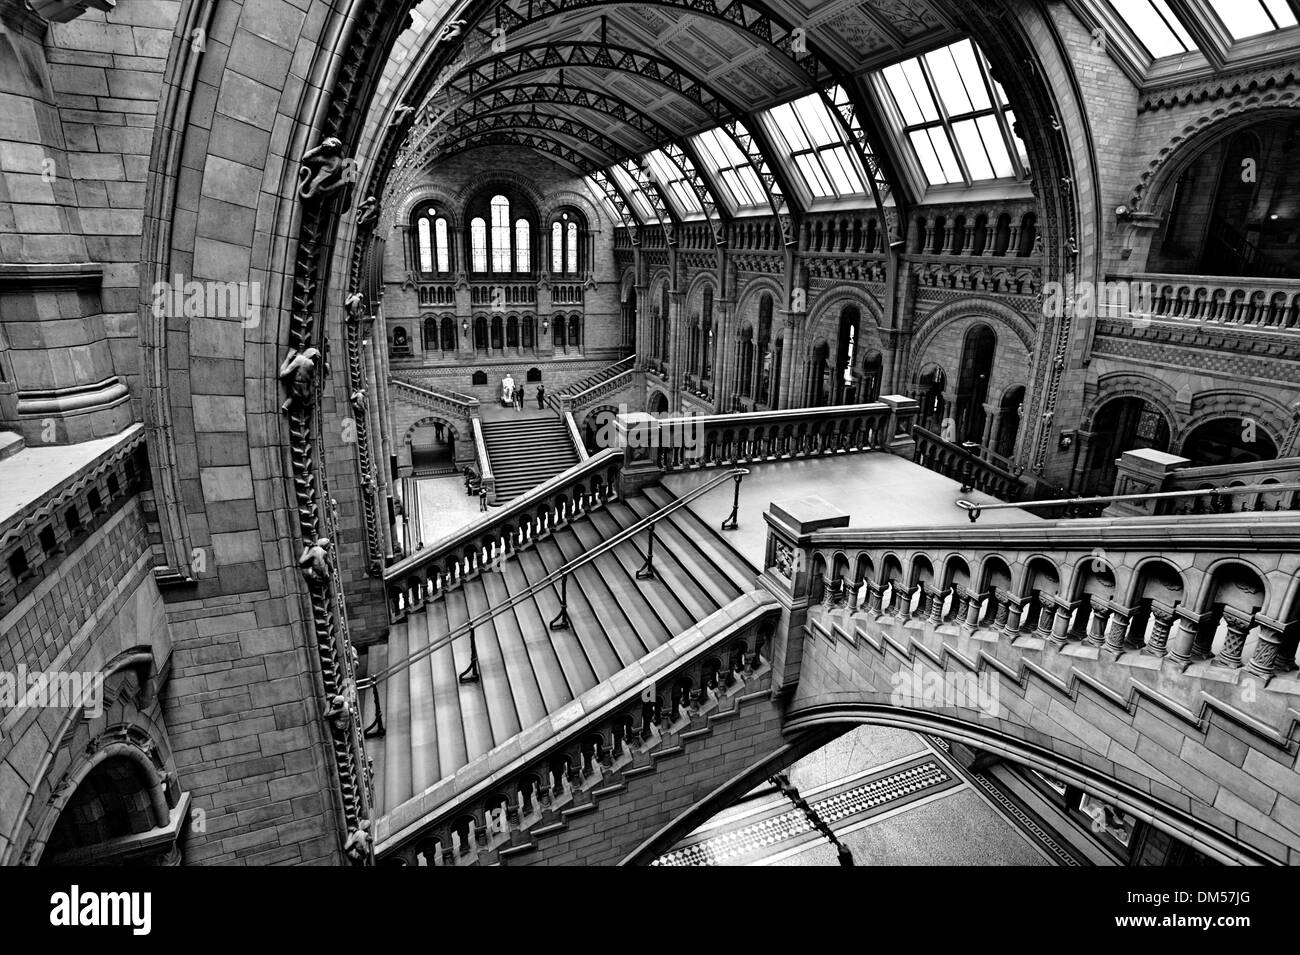 Natural History Museum, Interior. - Stock Image